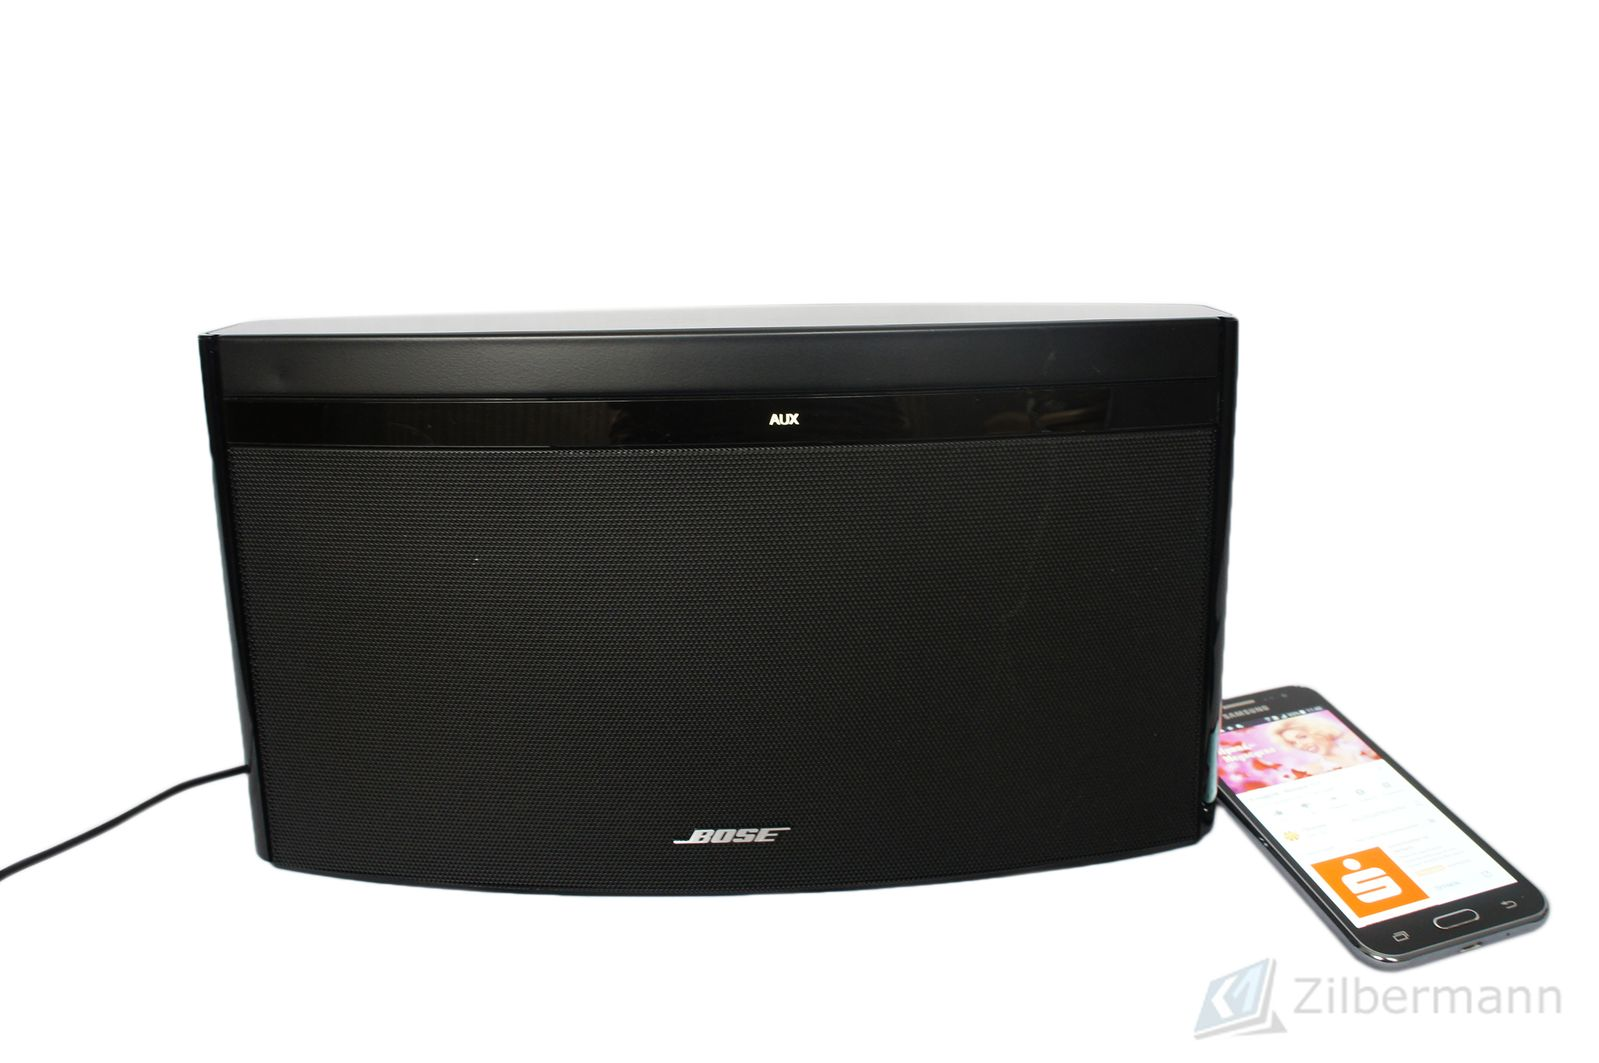 Bose_SoundLink_Air_Digital_Music_System_10